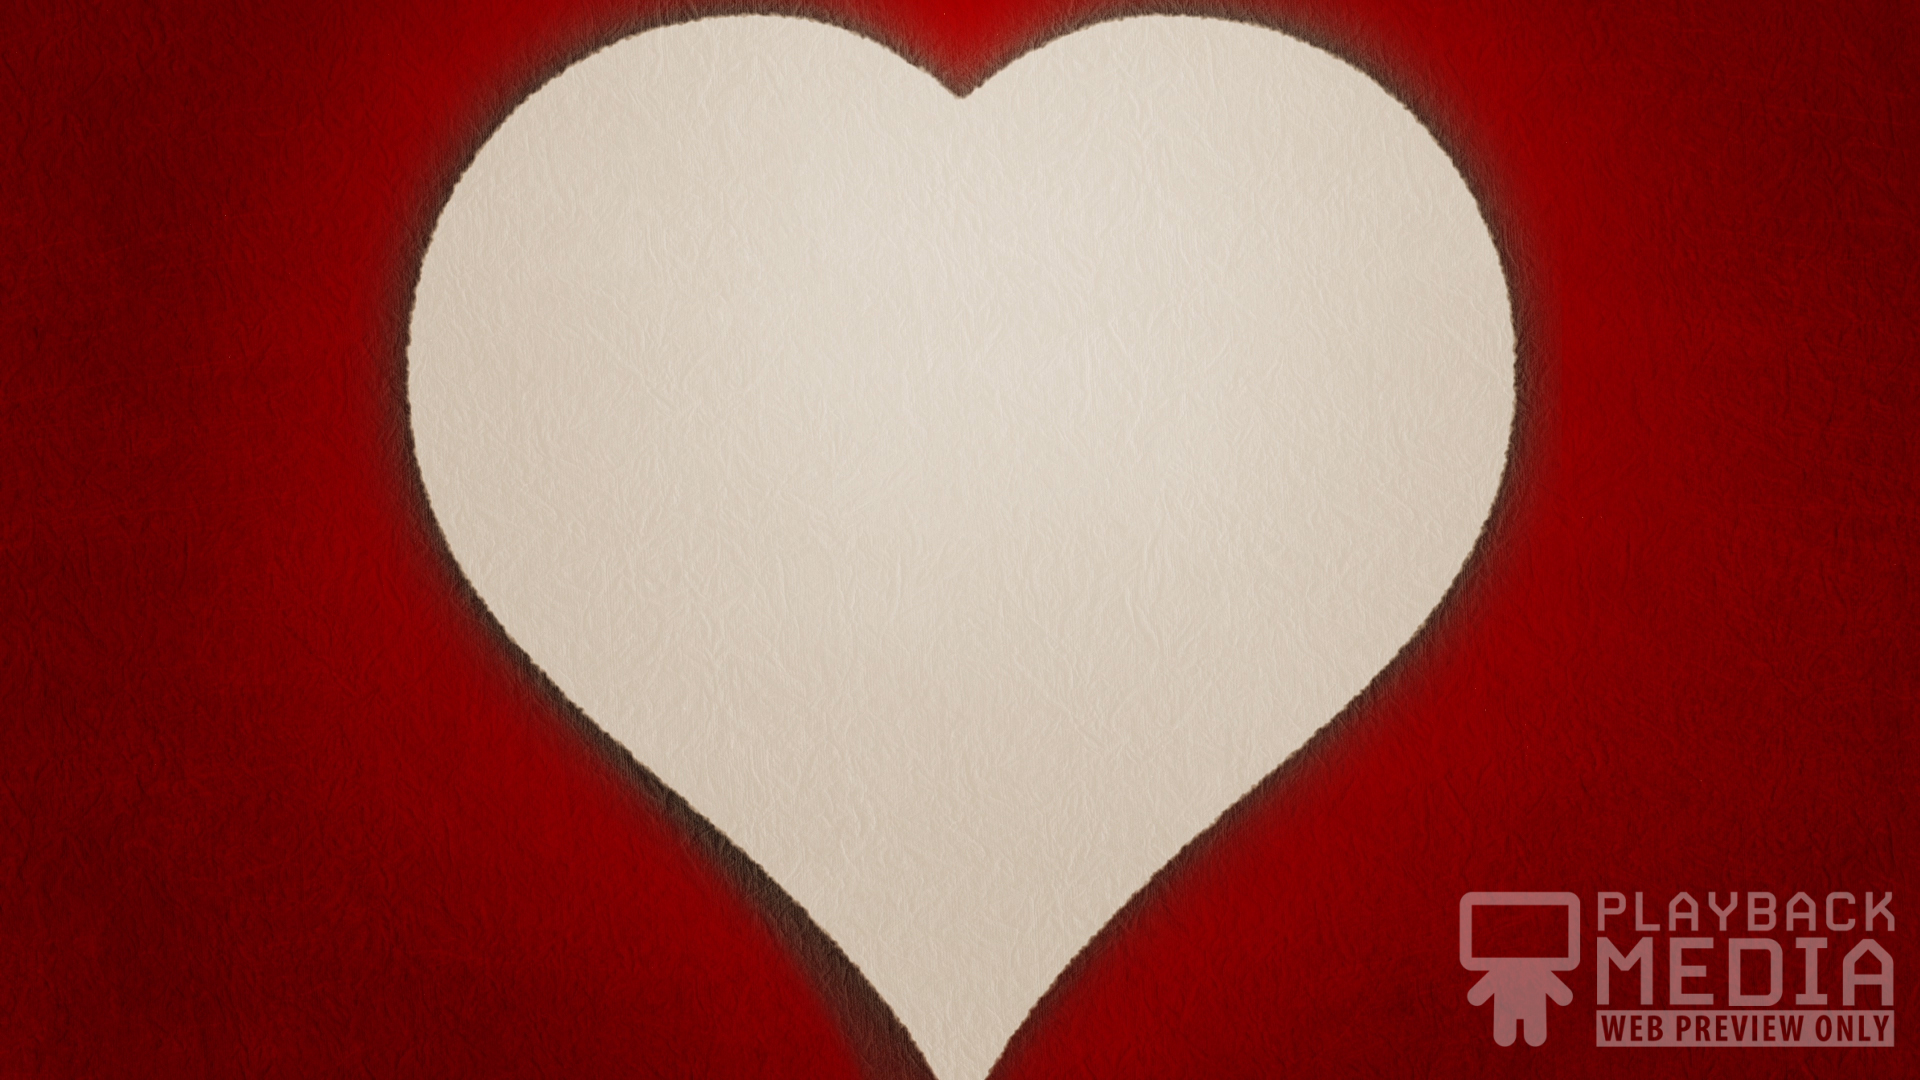 Made With Love Heart 2 Motion Image